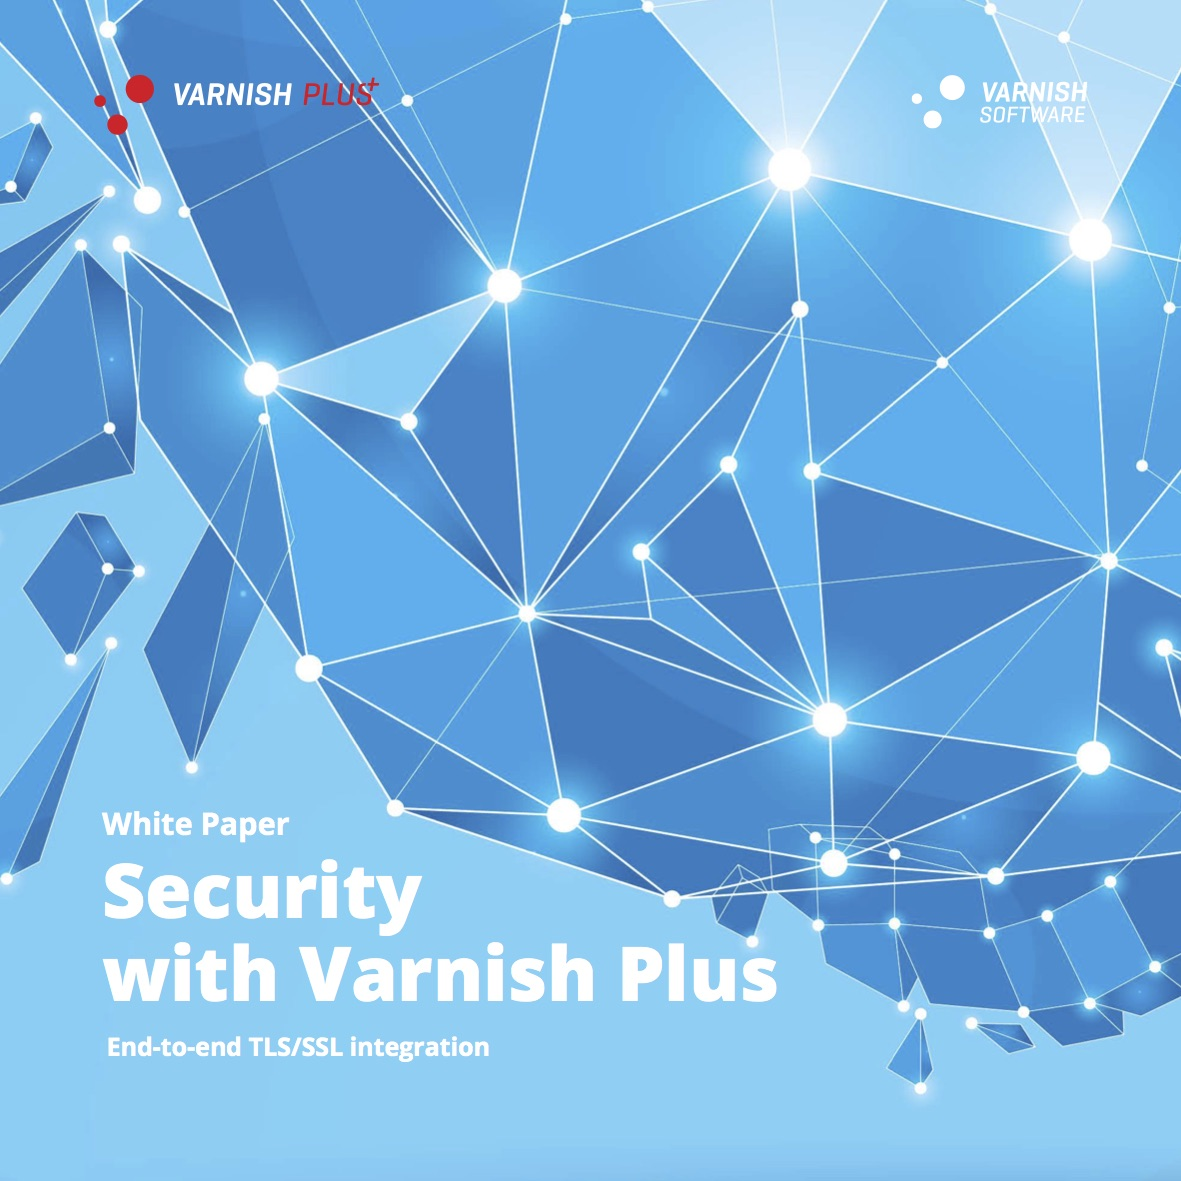 White_paper_Security_in_Varnish_Plus_SSL-TLS_Varnish_Software.jpg